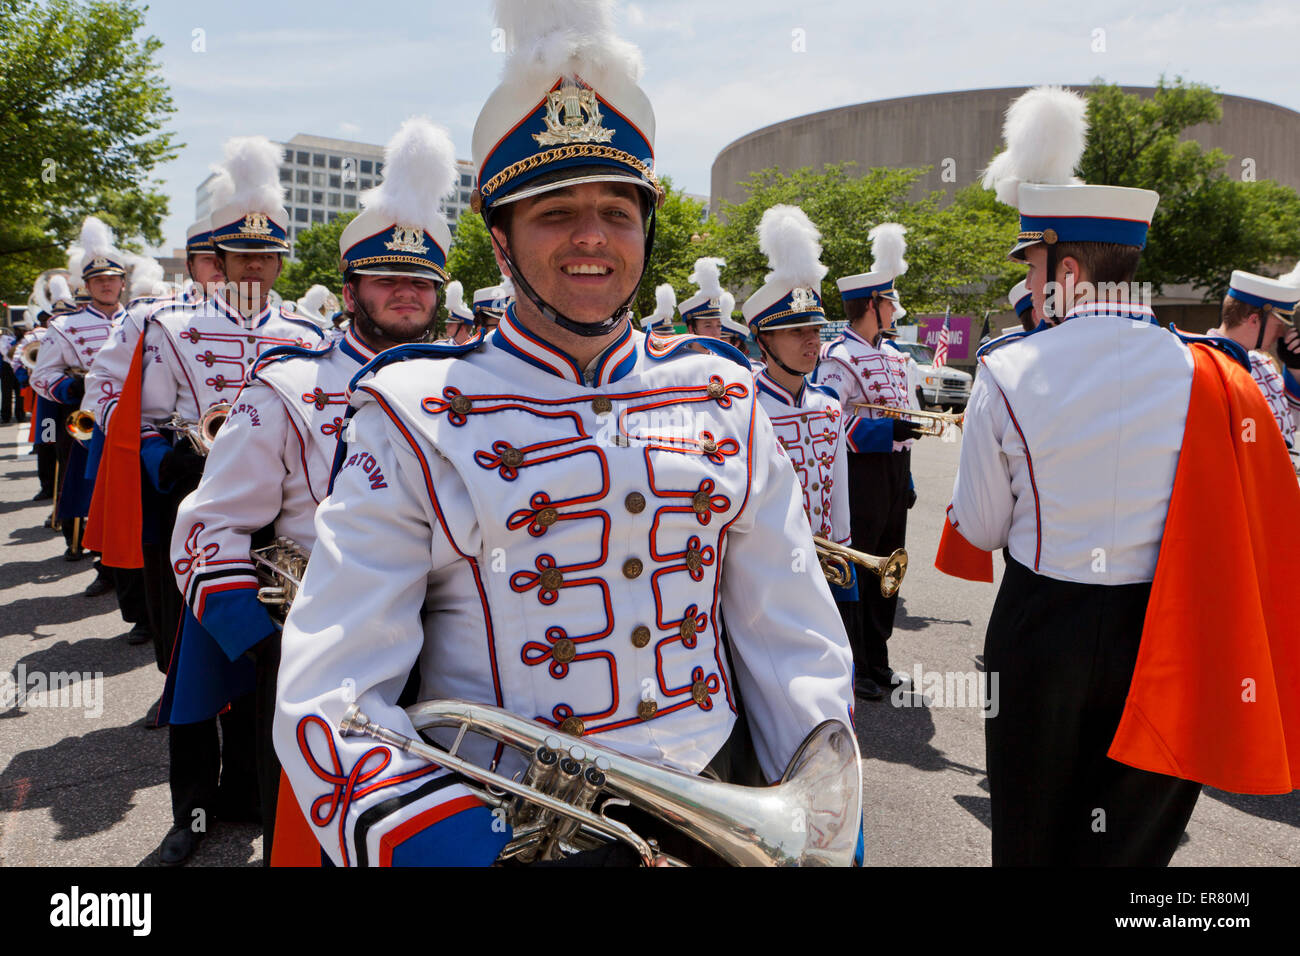 High school marching band member in uniform - USA - Stock Image